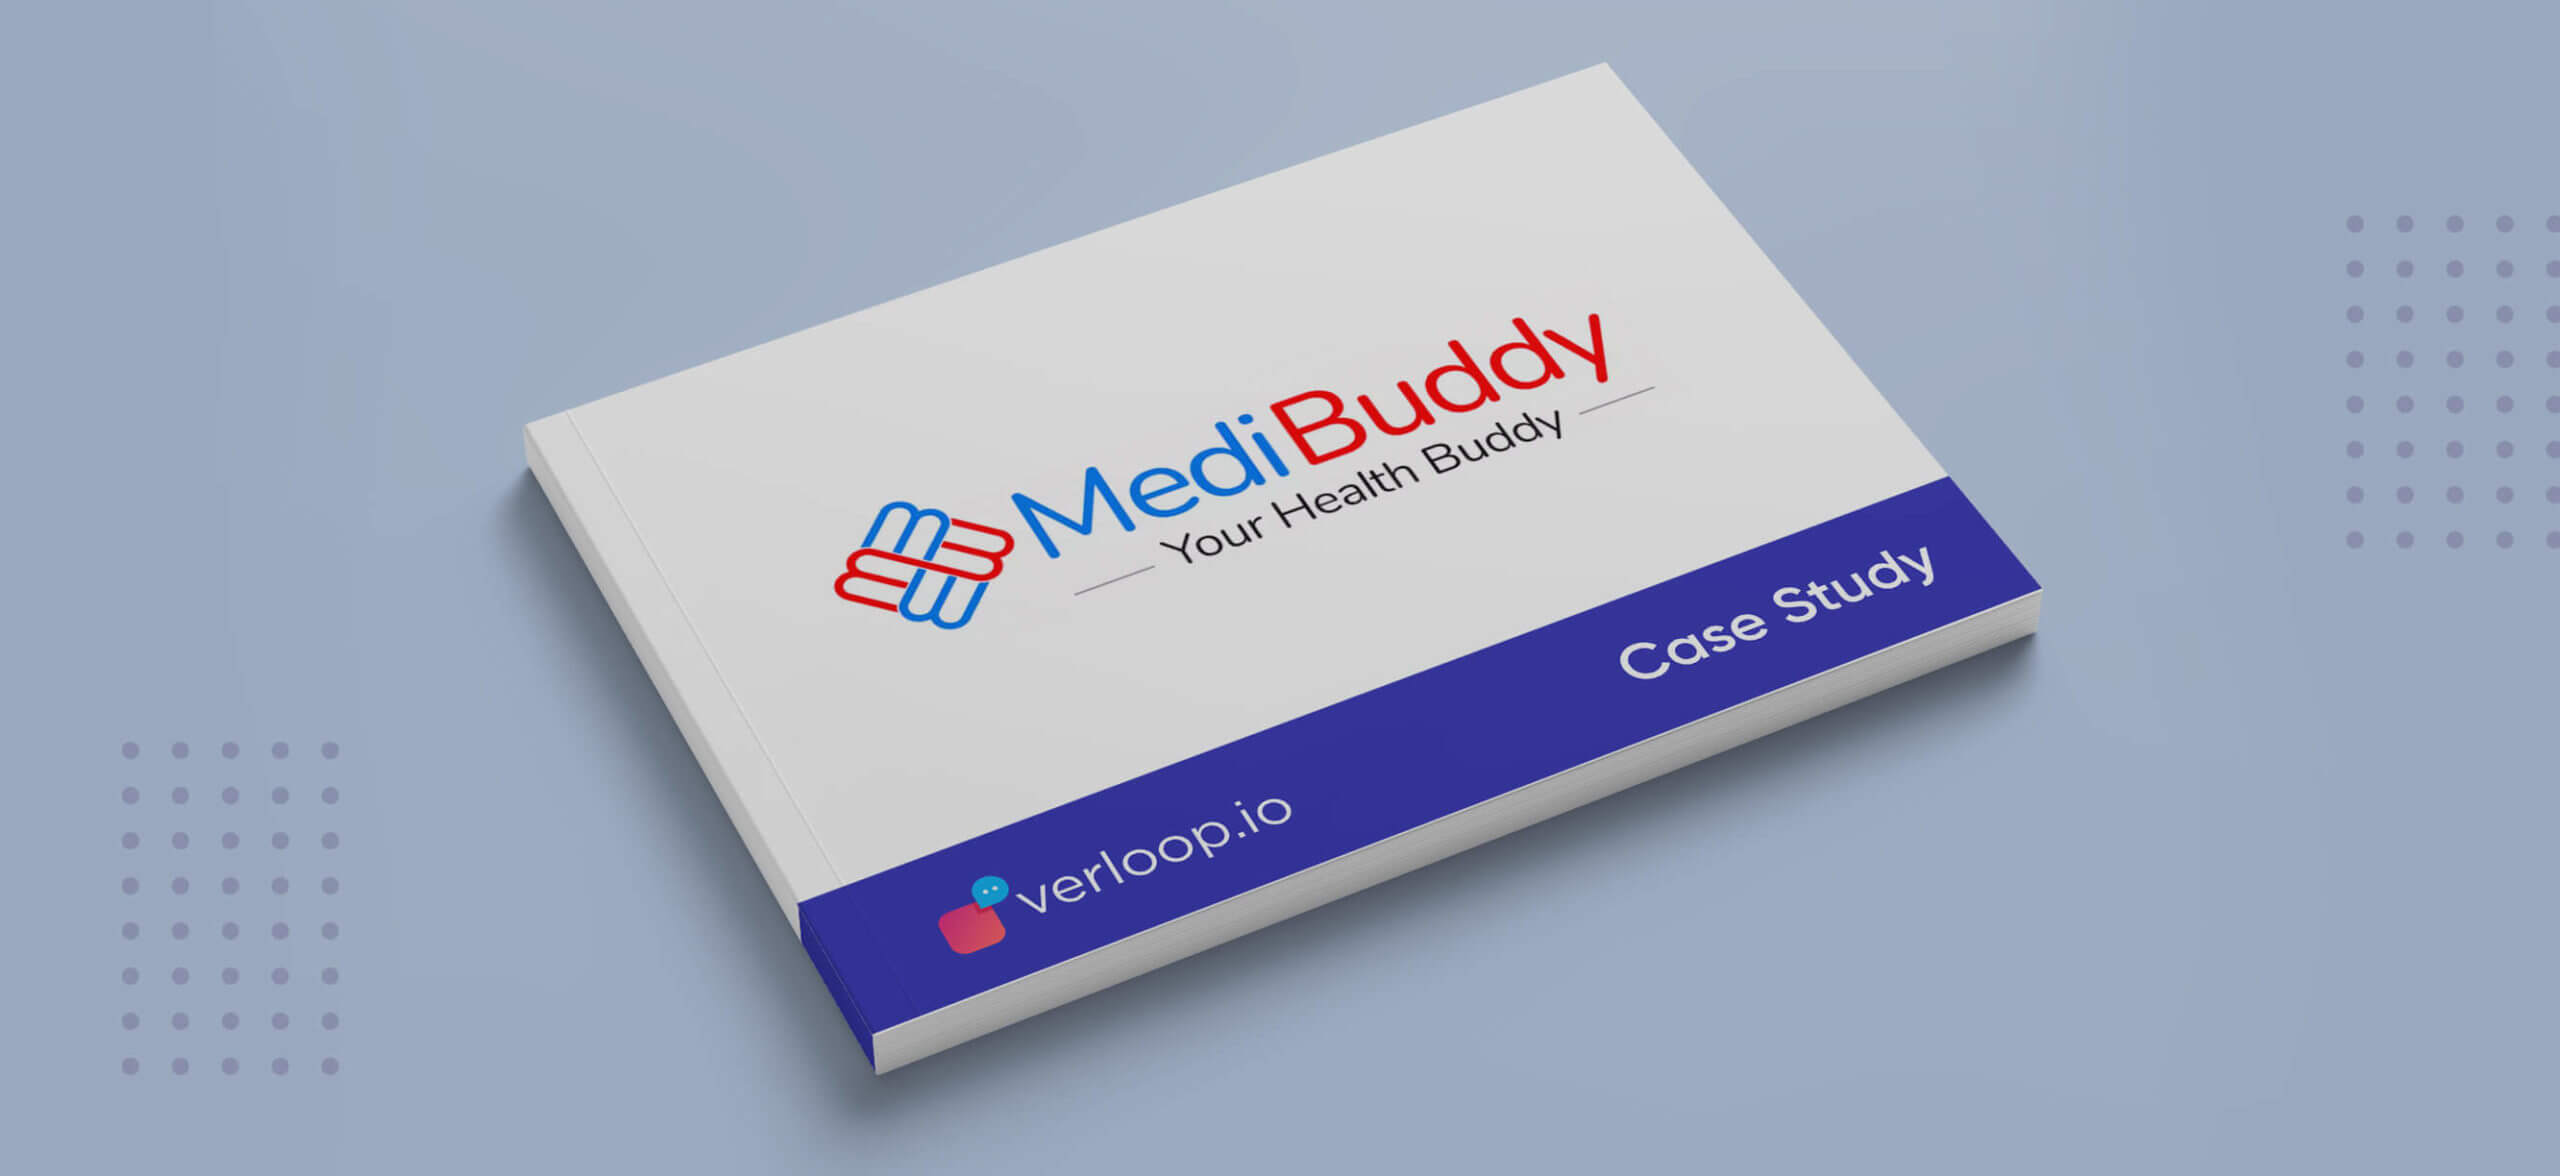 MediBuddy Increased Its CSAT To Over 90% After Moving To Verloop.io's Chatbot